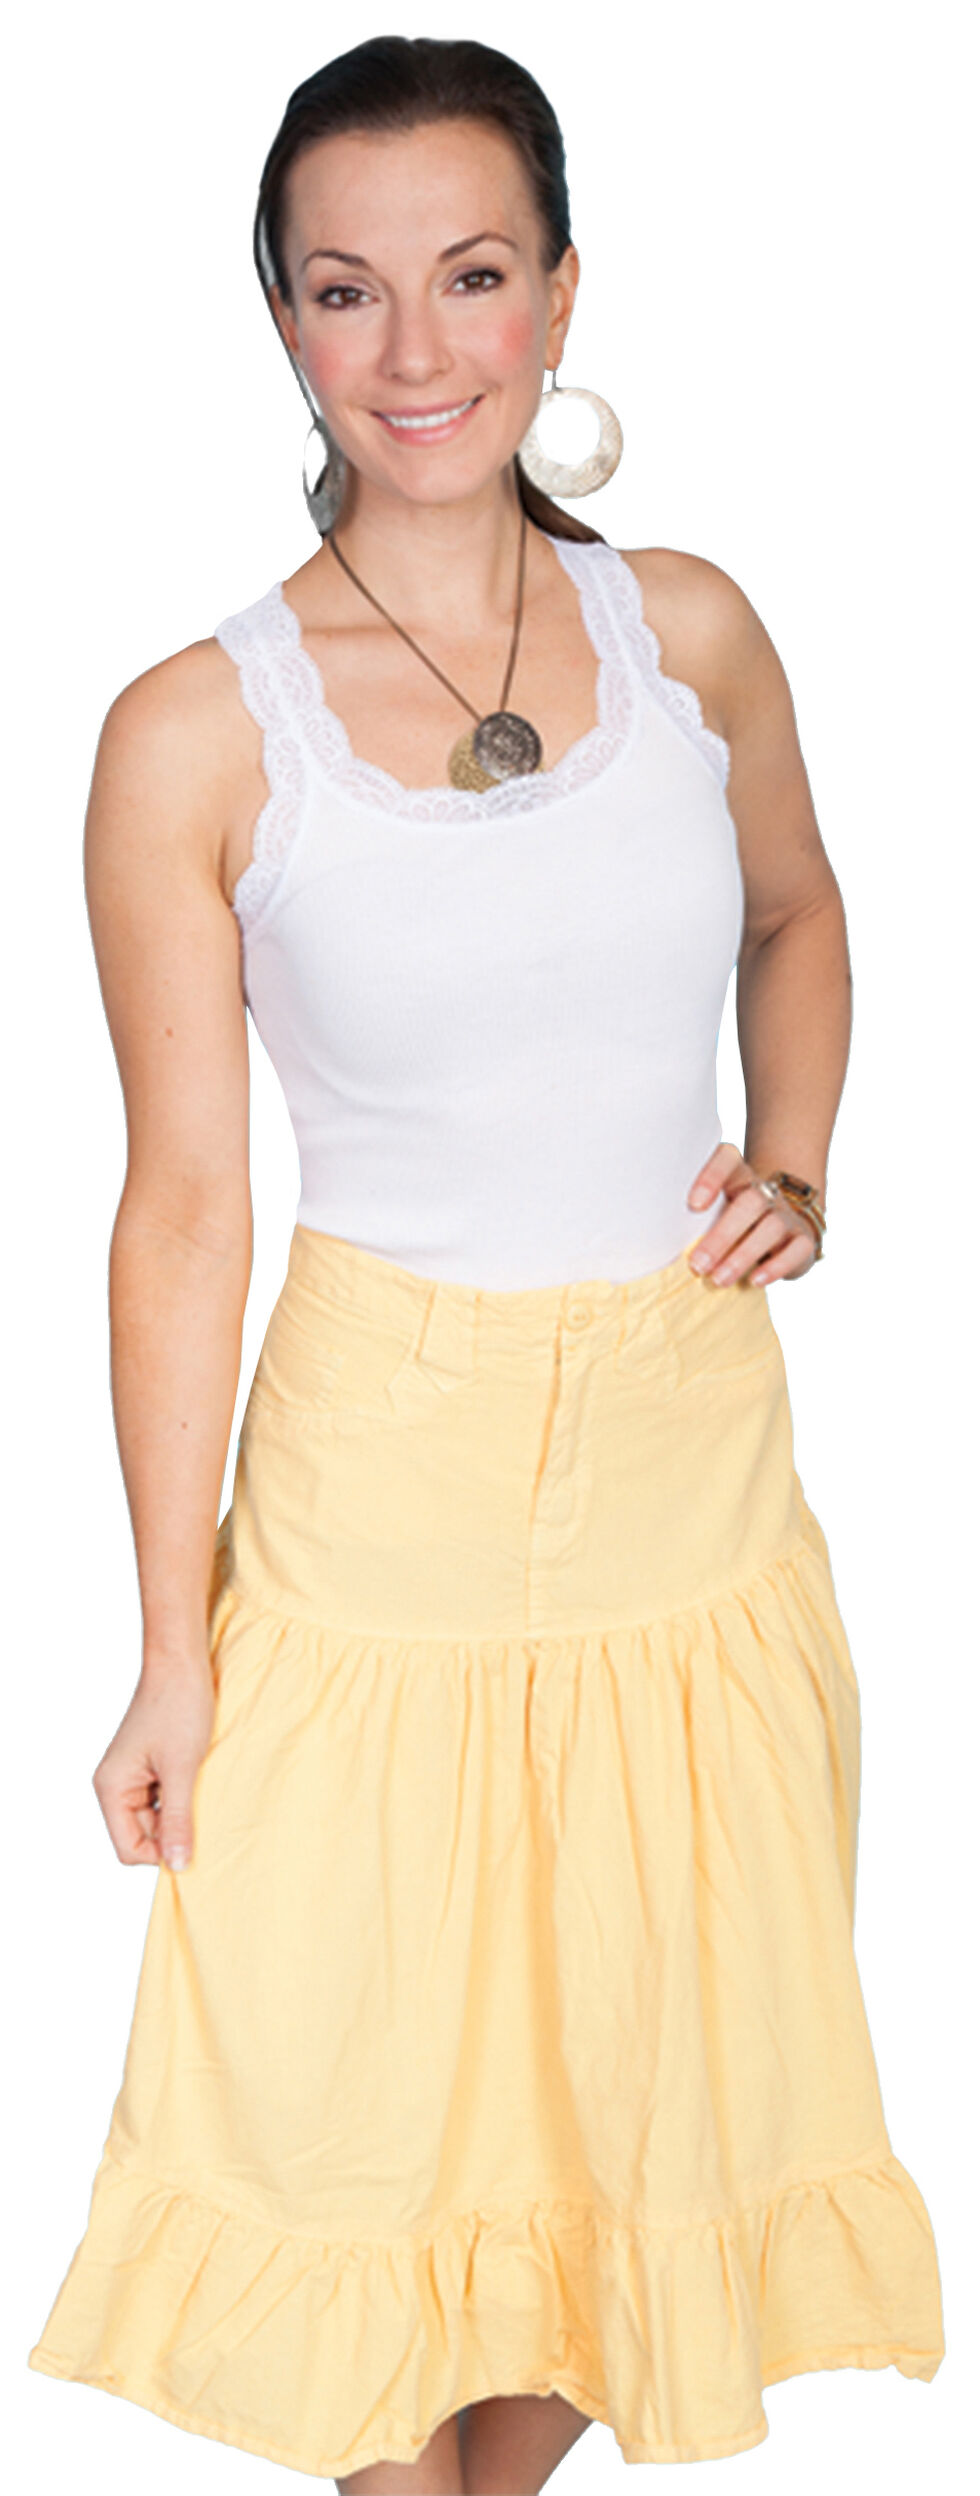 Scully Jean Style Skirt, Yellow, hi-res